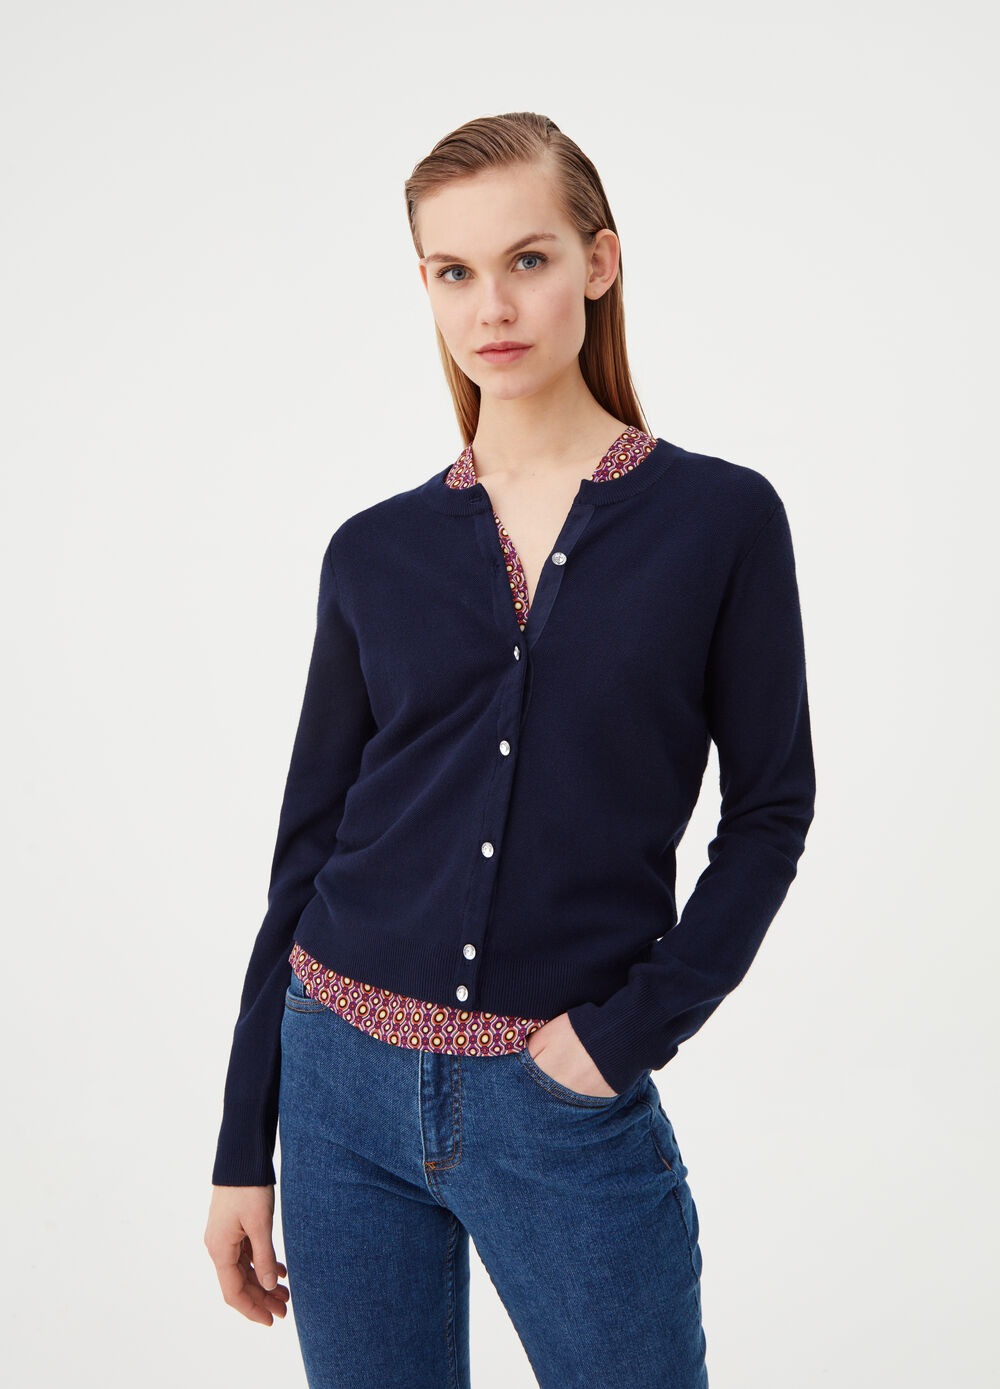 Cardigan with jewel buttons